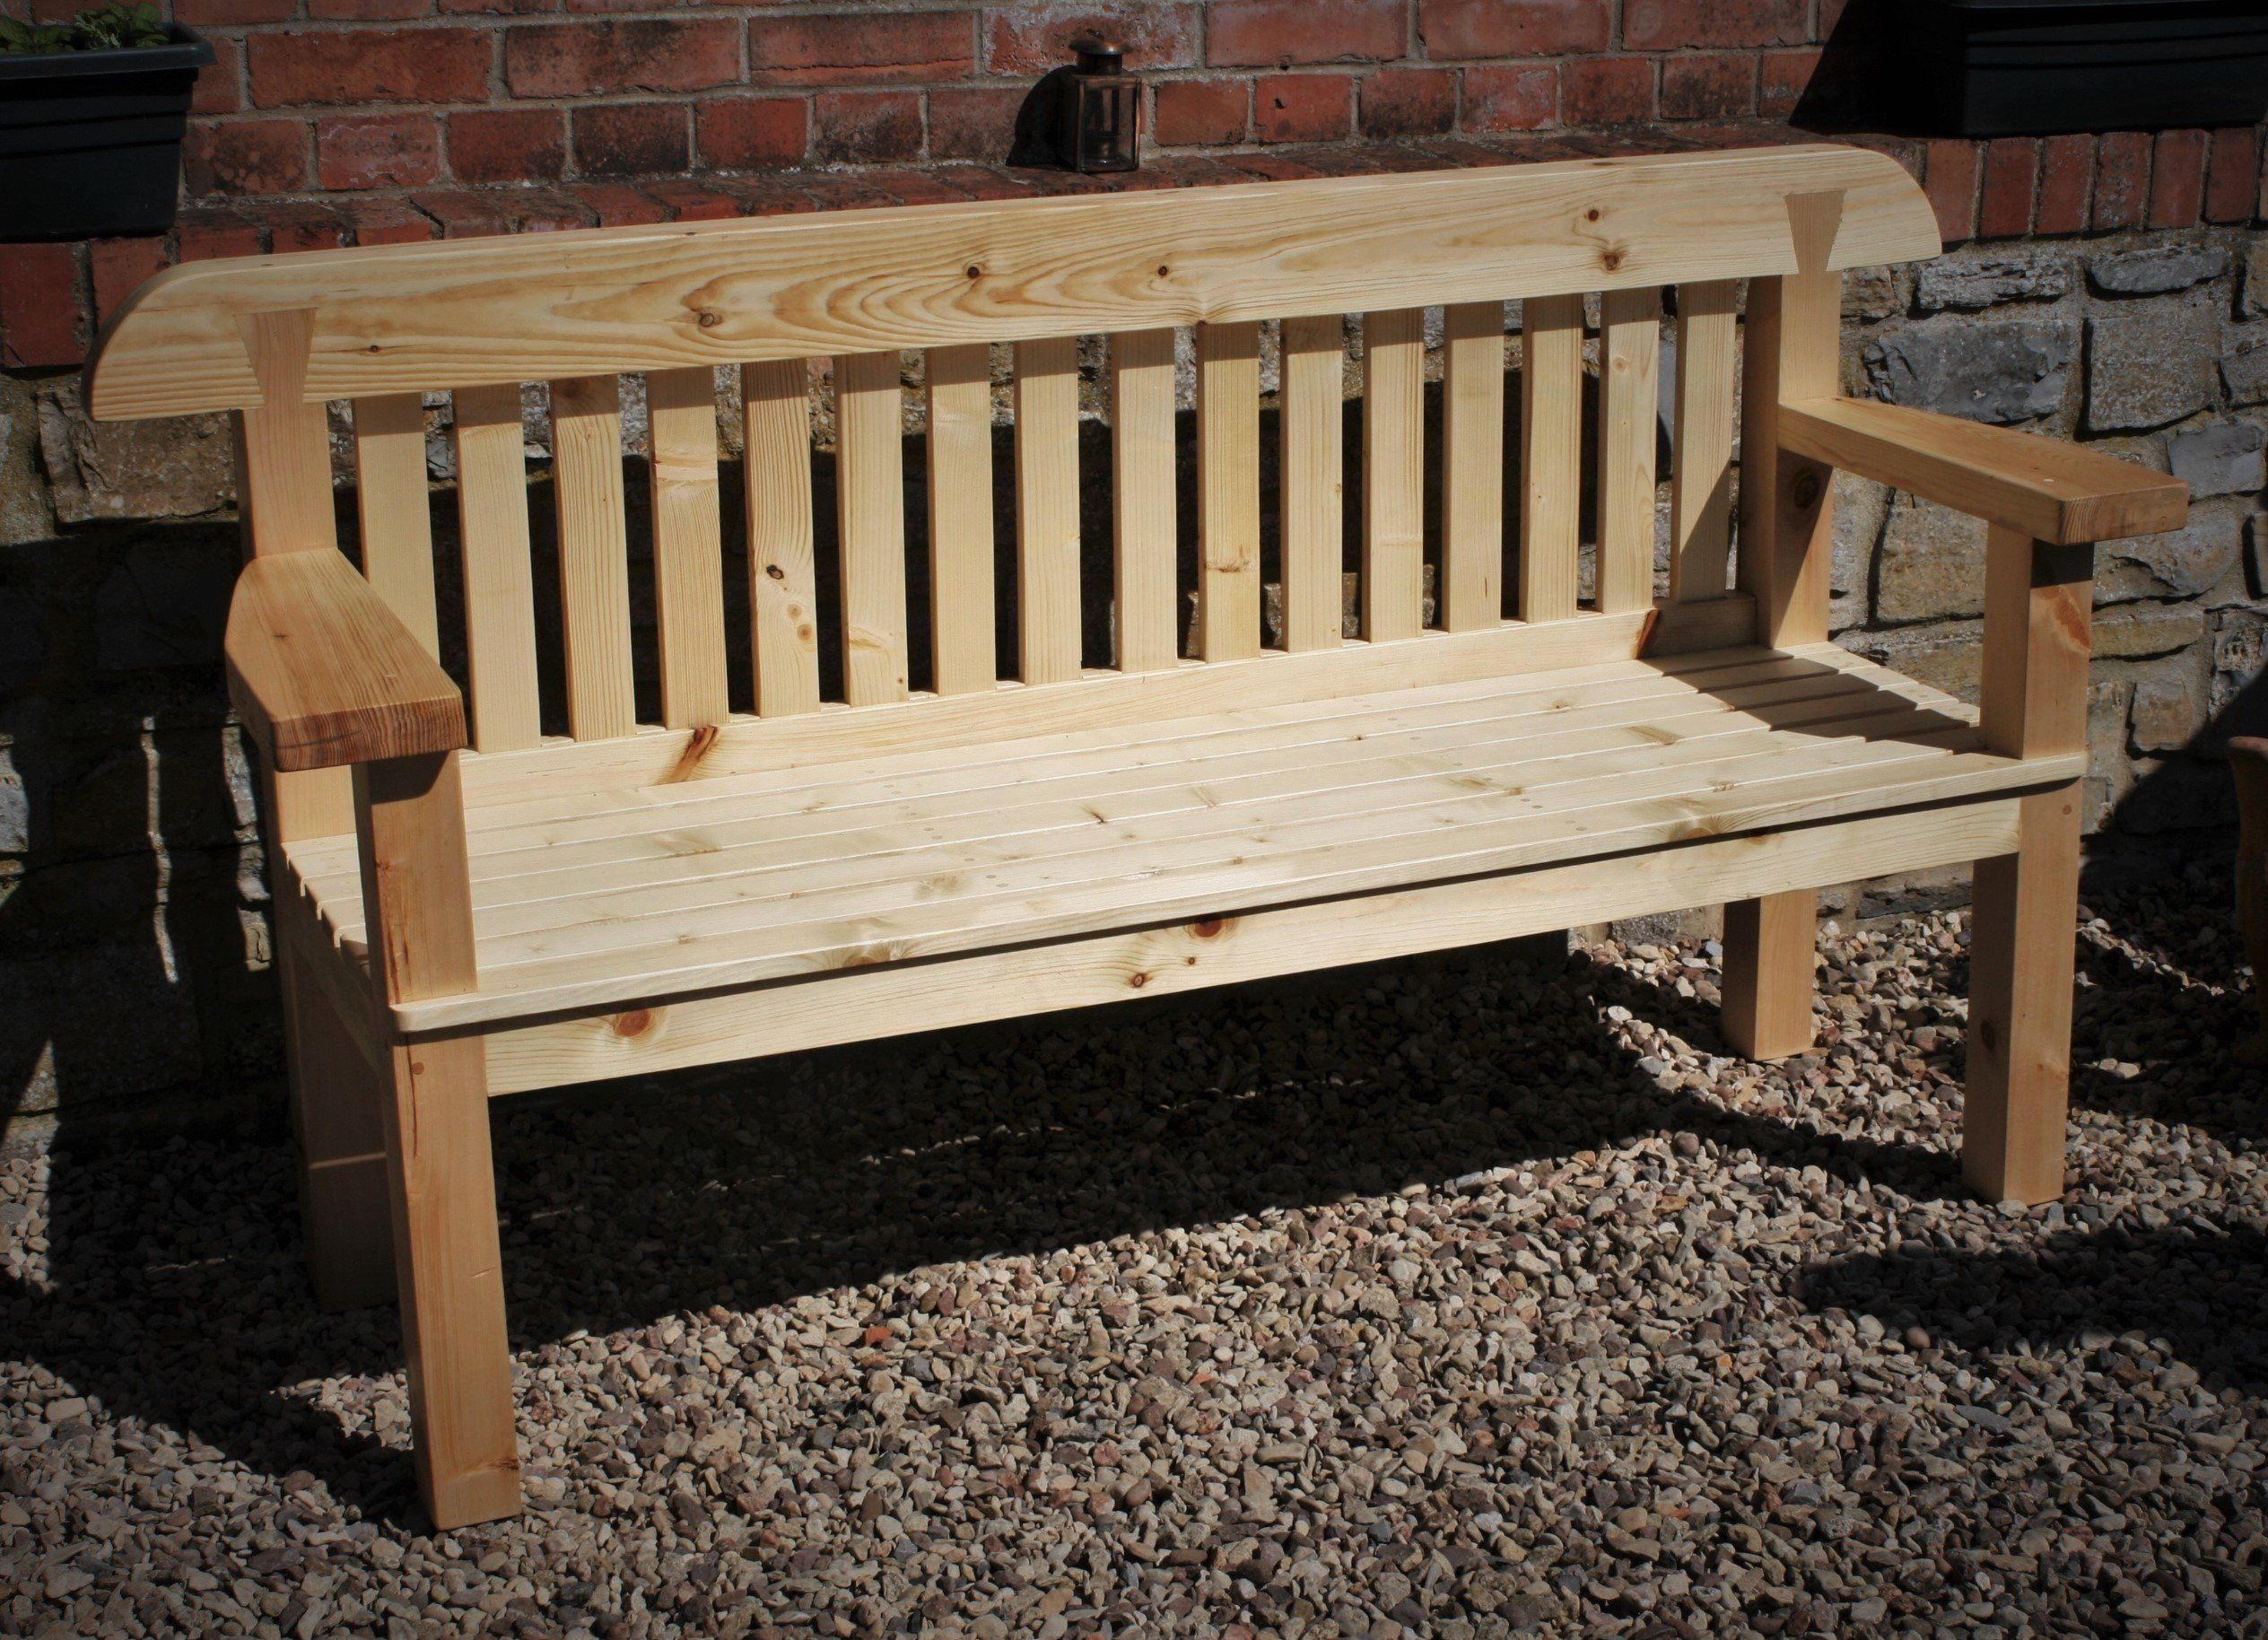 Garden Bench Seat With Wide Arms Natural Solid Wood Rustic Country Cottage Outdoor Garden Furn Garden Bench Seating Cottage Outdoor Wooden Garden Furniture